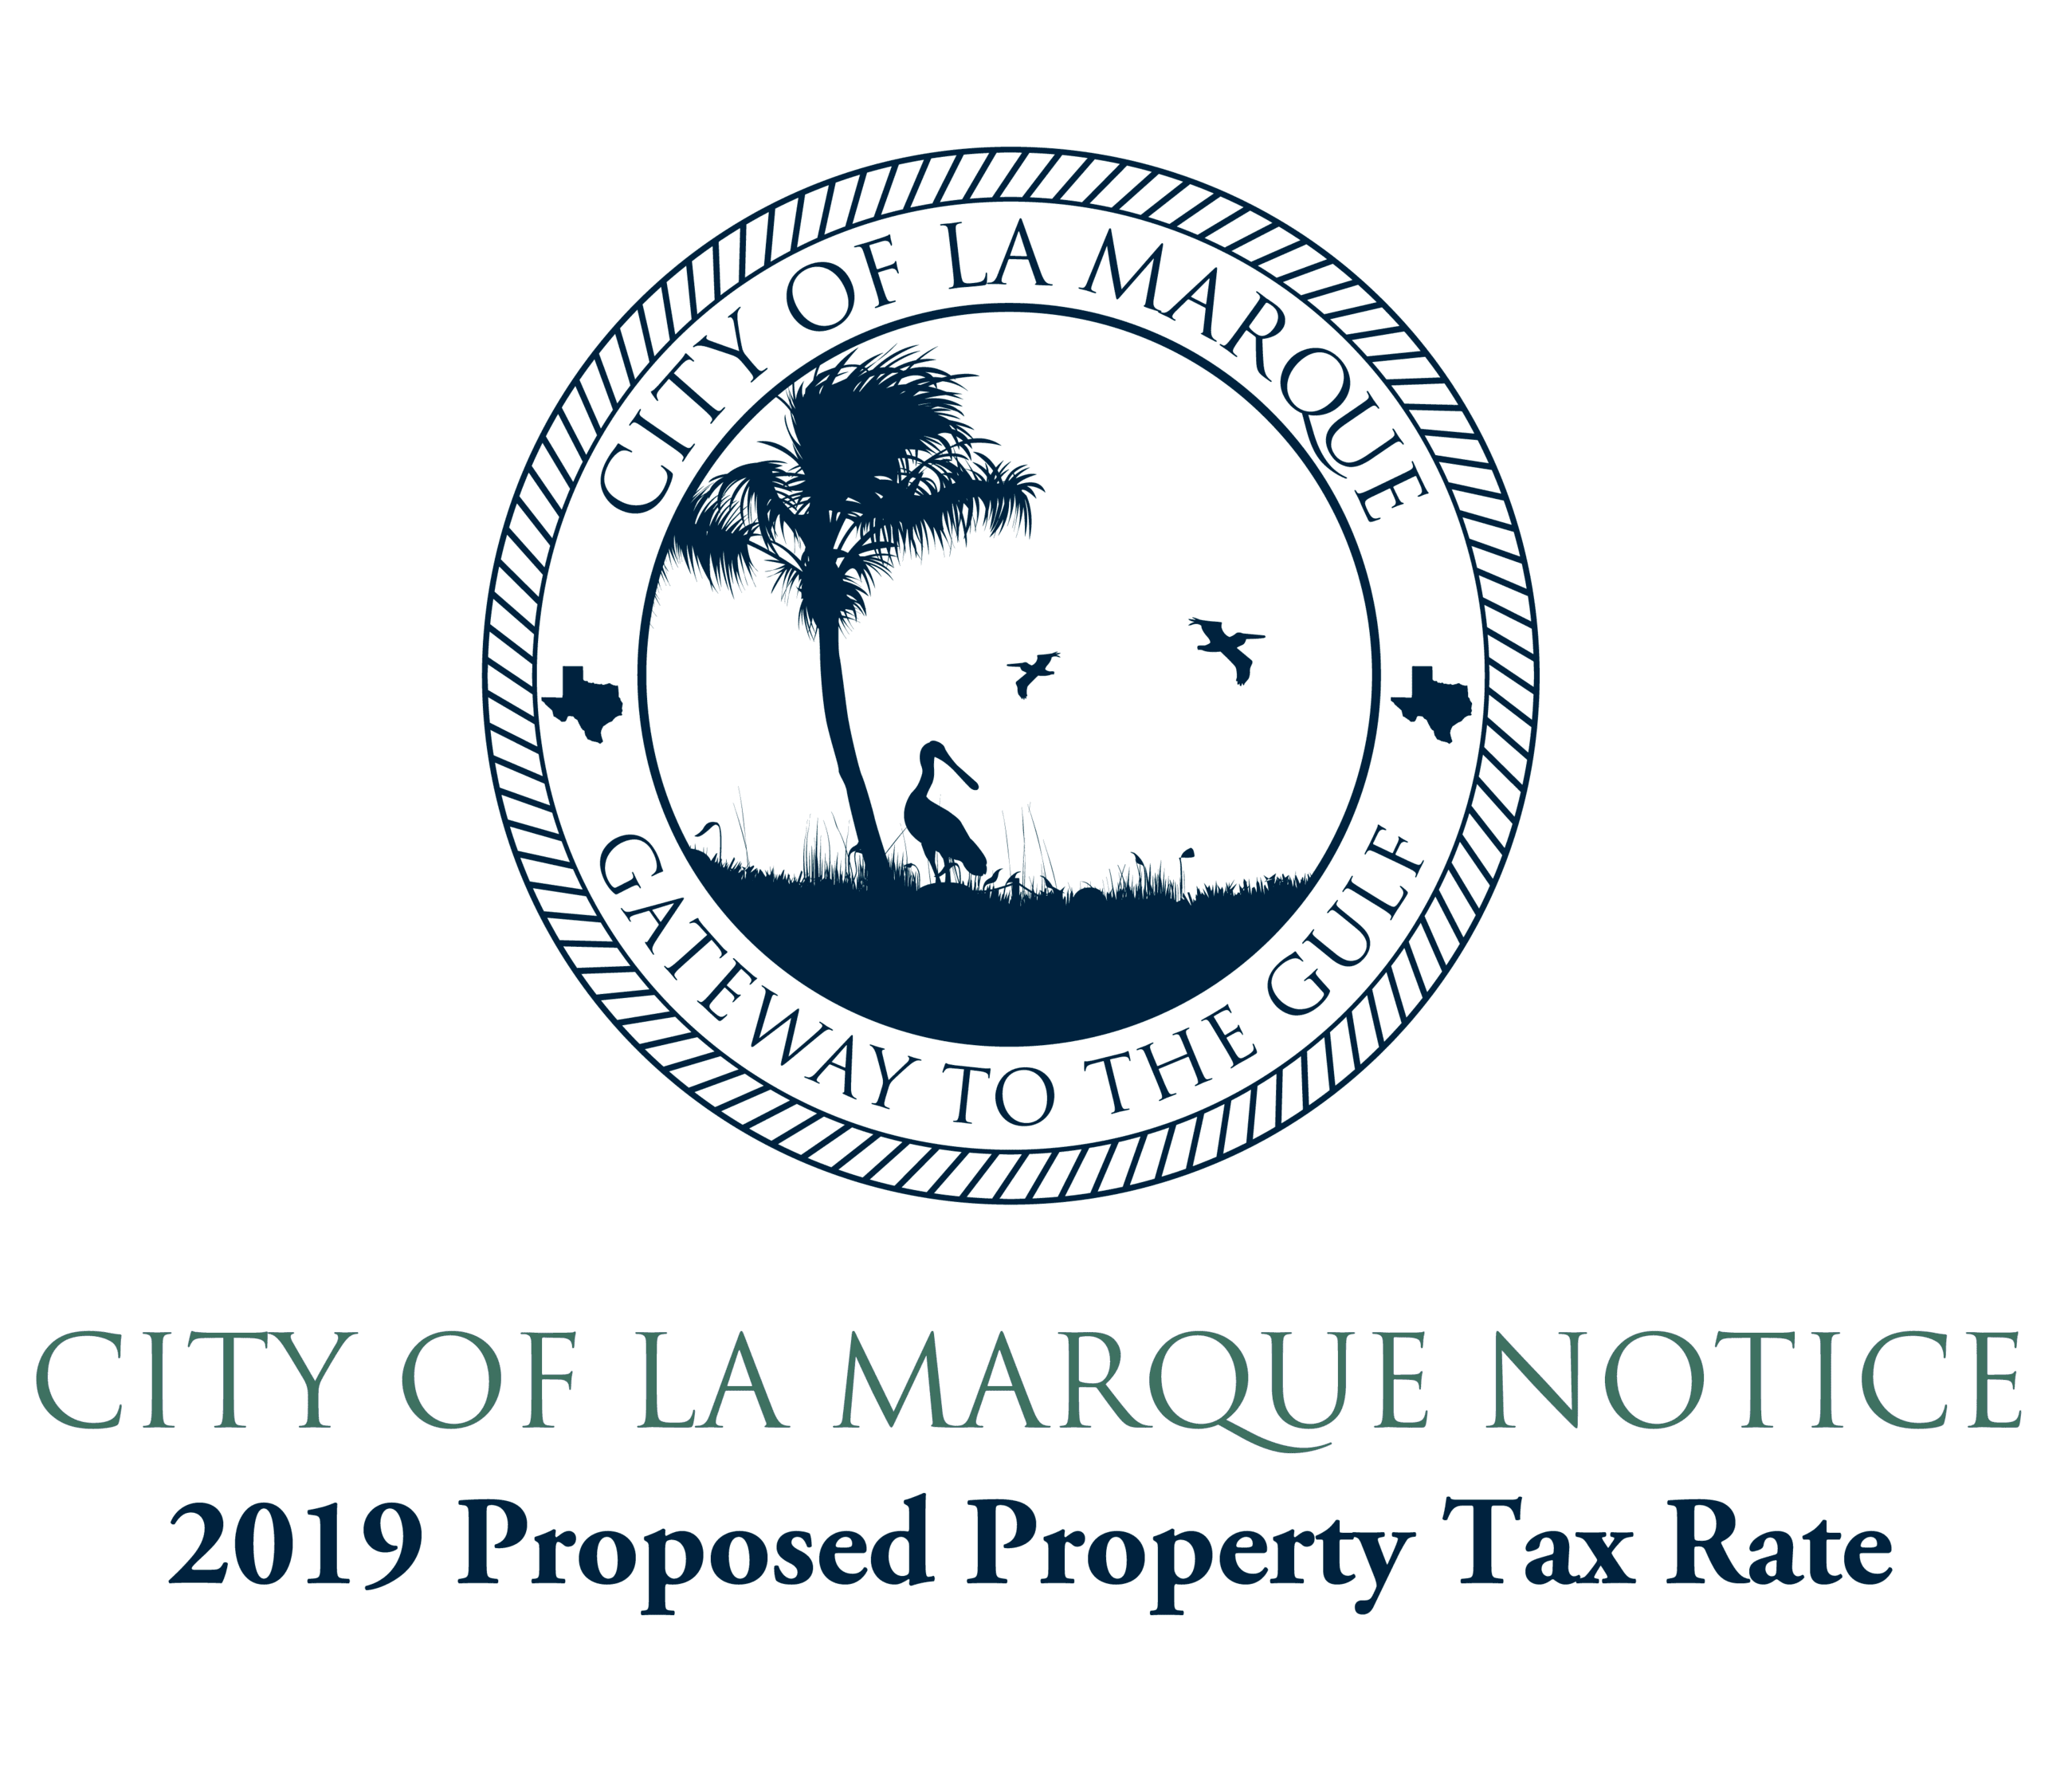 NOTICE OF 2019 TAX YEAR PROPOSED_8619